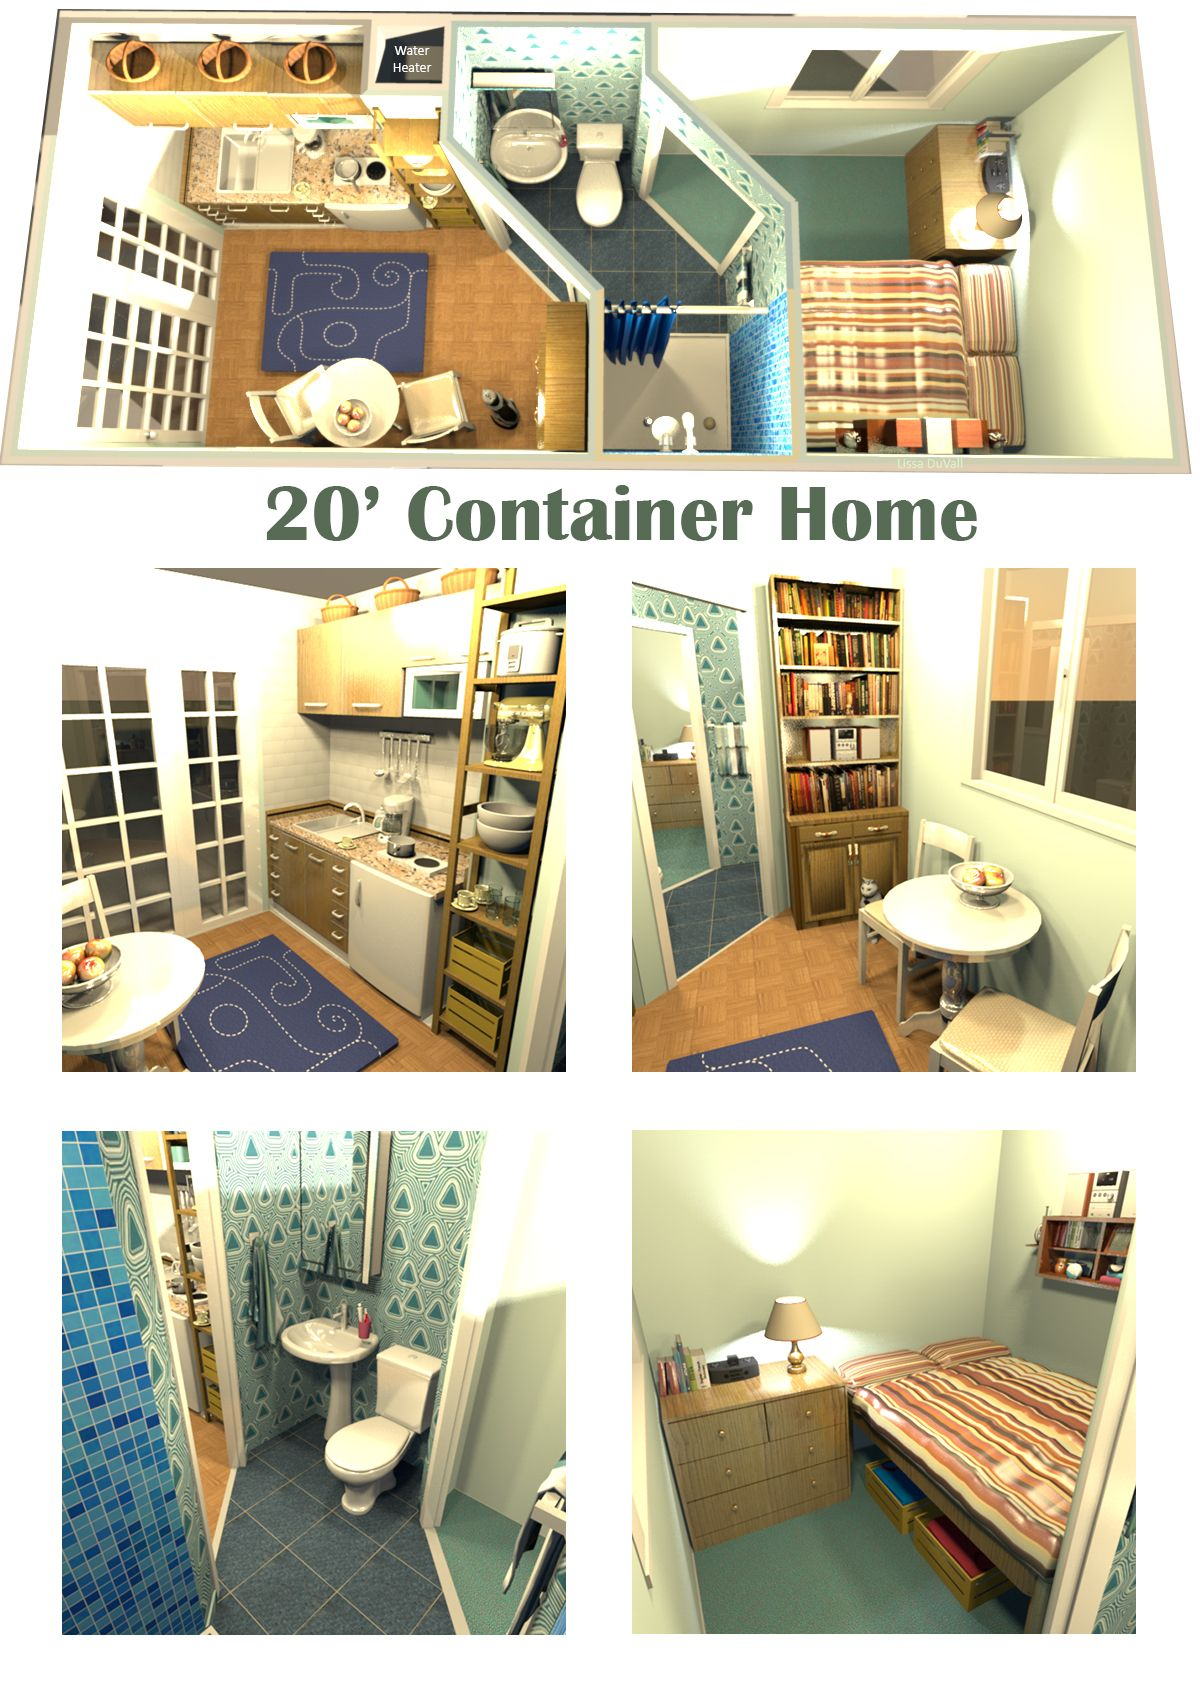 20 X8 Container Home Full Size Bed A Very Space Efficient Floor Plan For A Container Home Contain Container House Tiny House Loft Building A Container Home